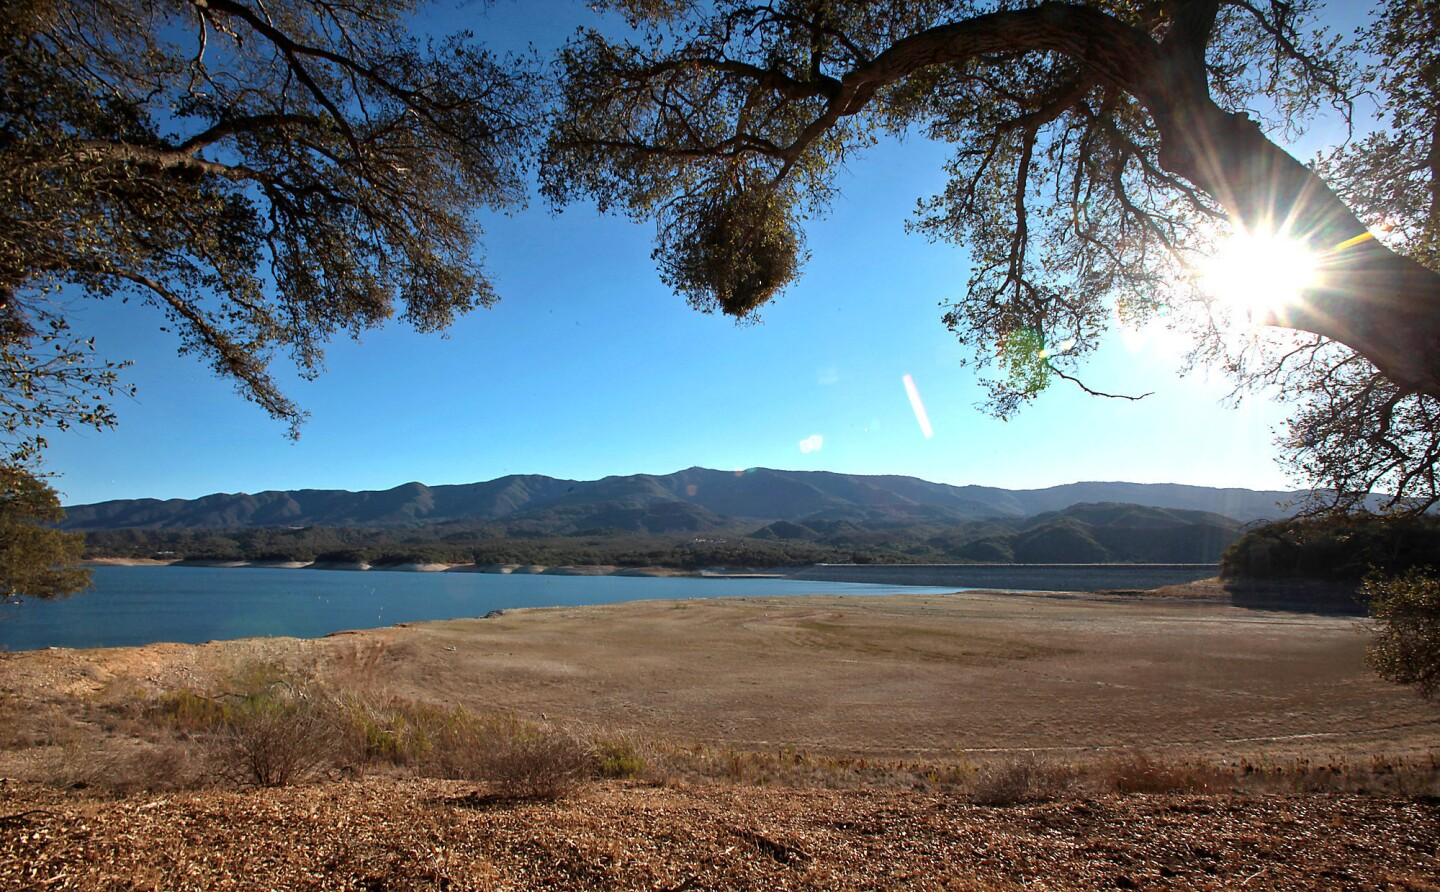 Cachuma Lake's previous shoreline is brown and dry as the water level continues to drop because of sustained drought conditions.